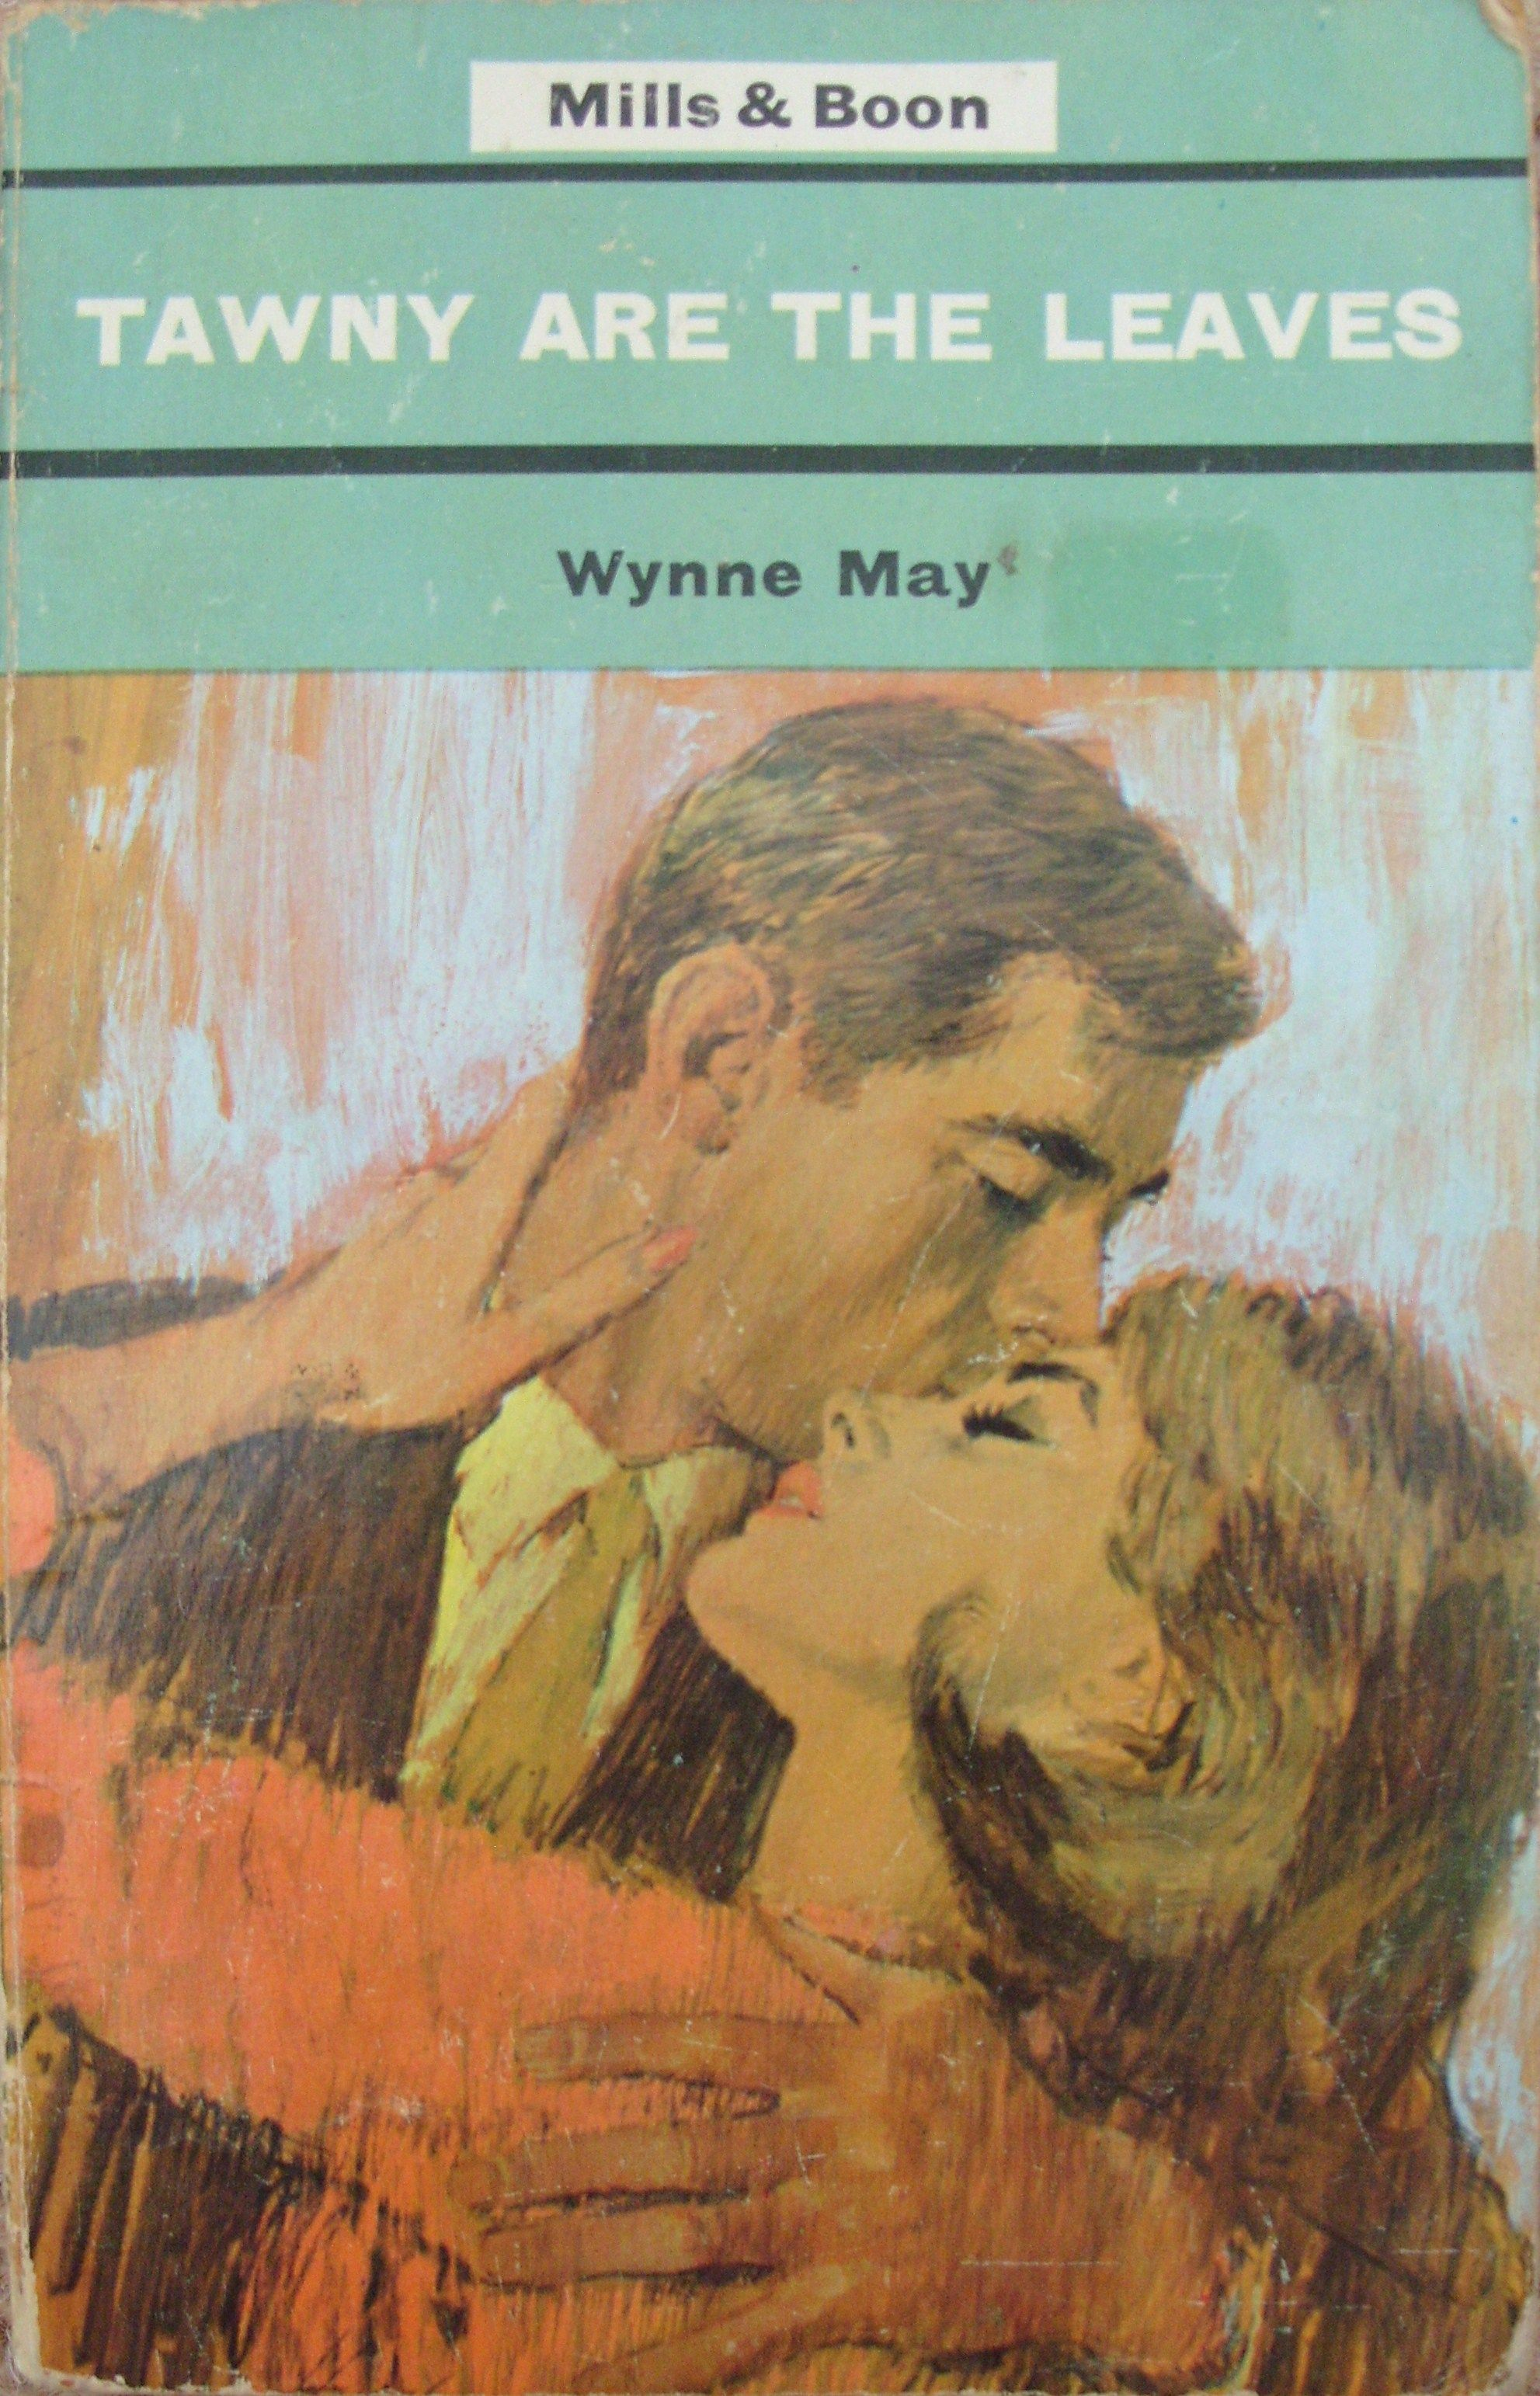 Pin on Vintage Mills & Boon/Harlequin Covers